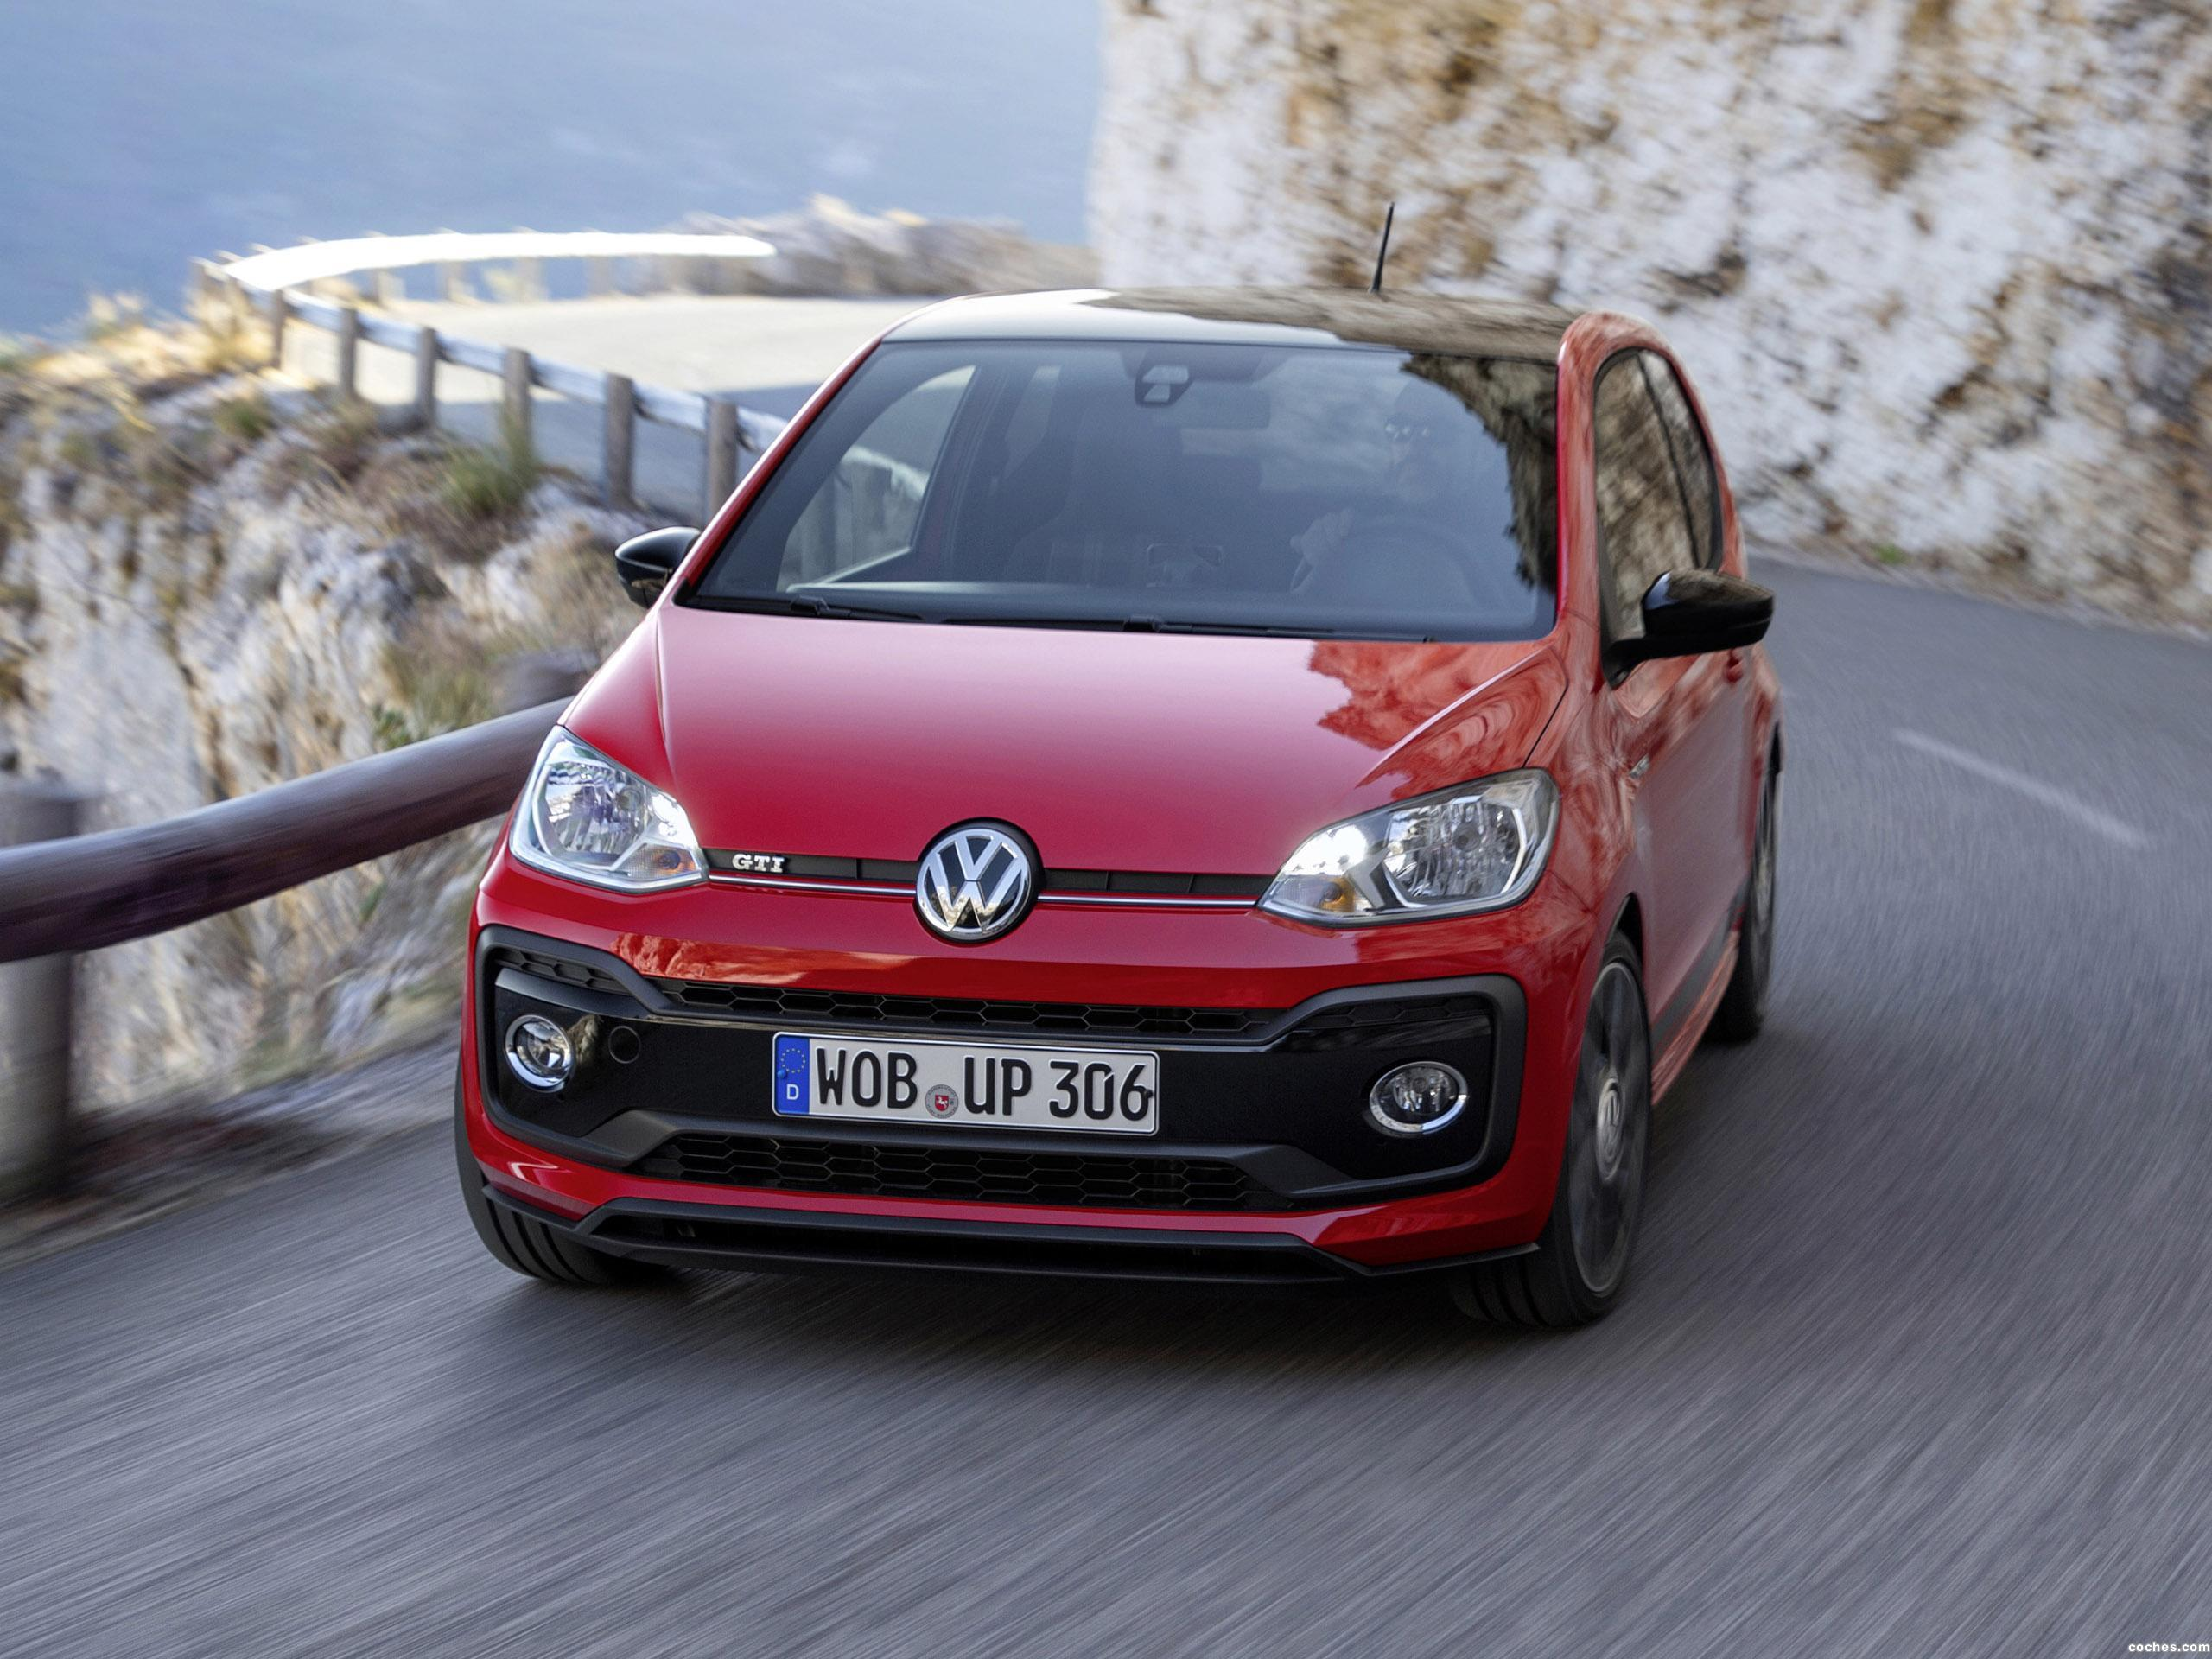 volkswagen_up-gti-2018_r32.jpg